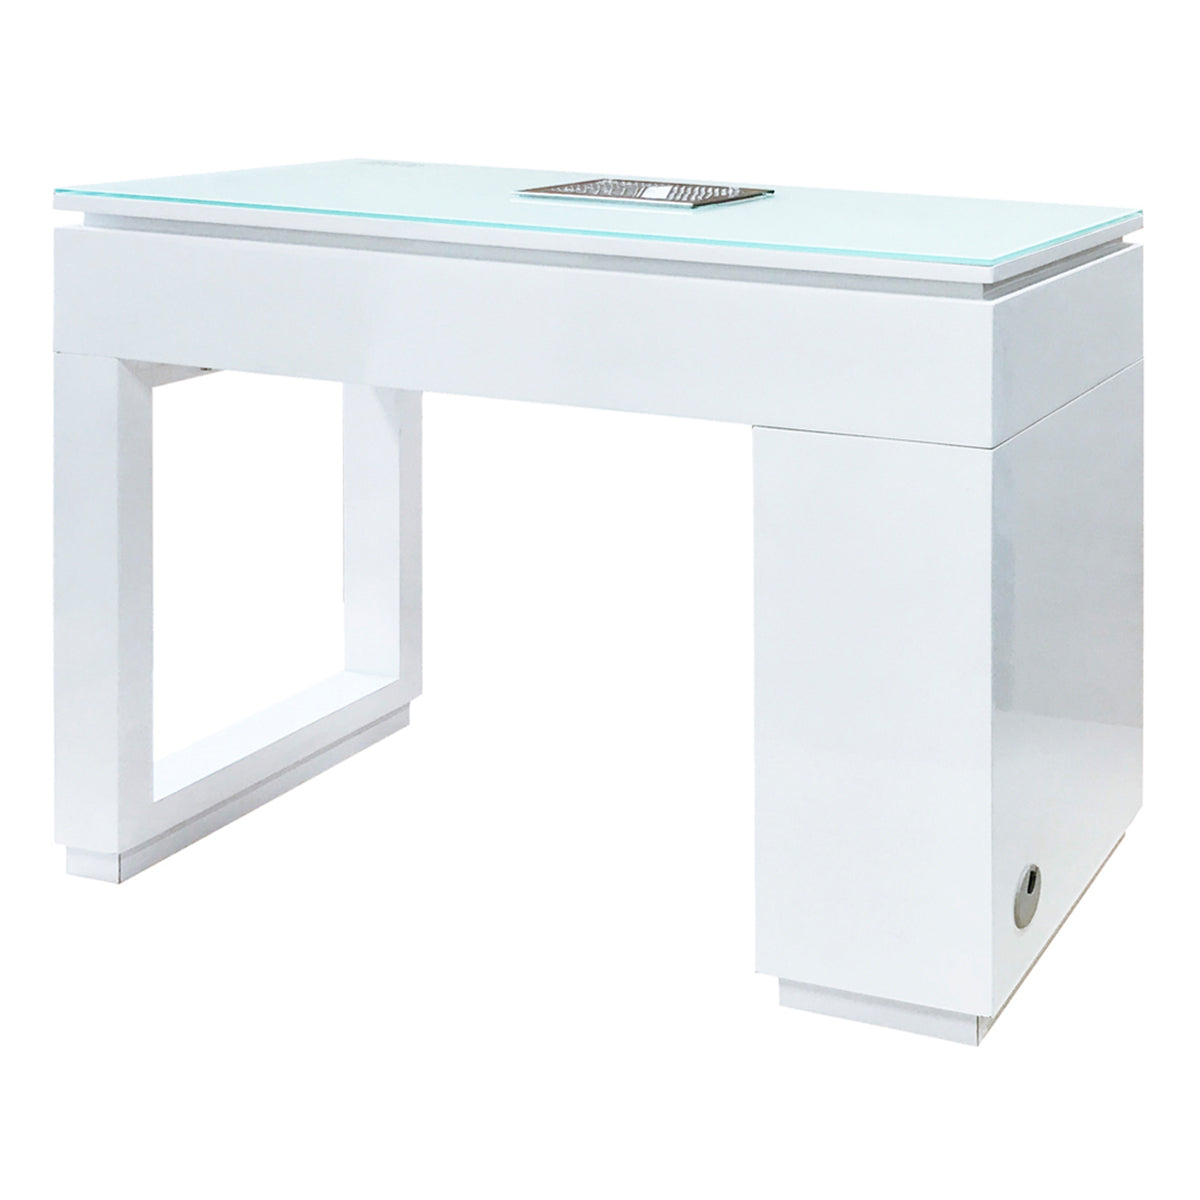 Valentino LUX Manicure Nail Table - White - Client Side